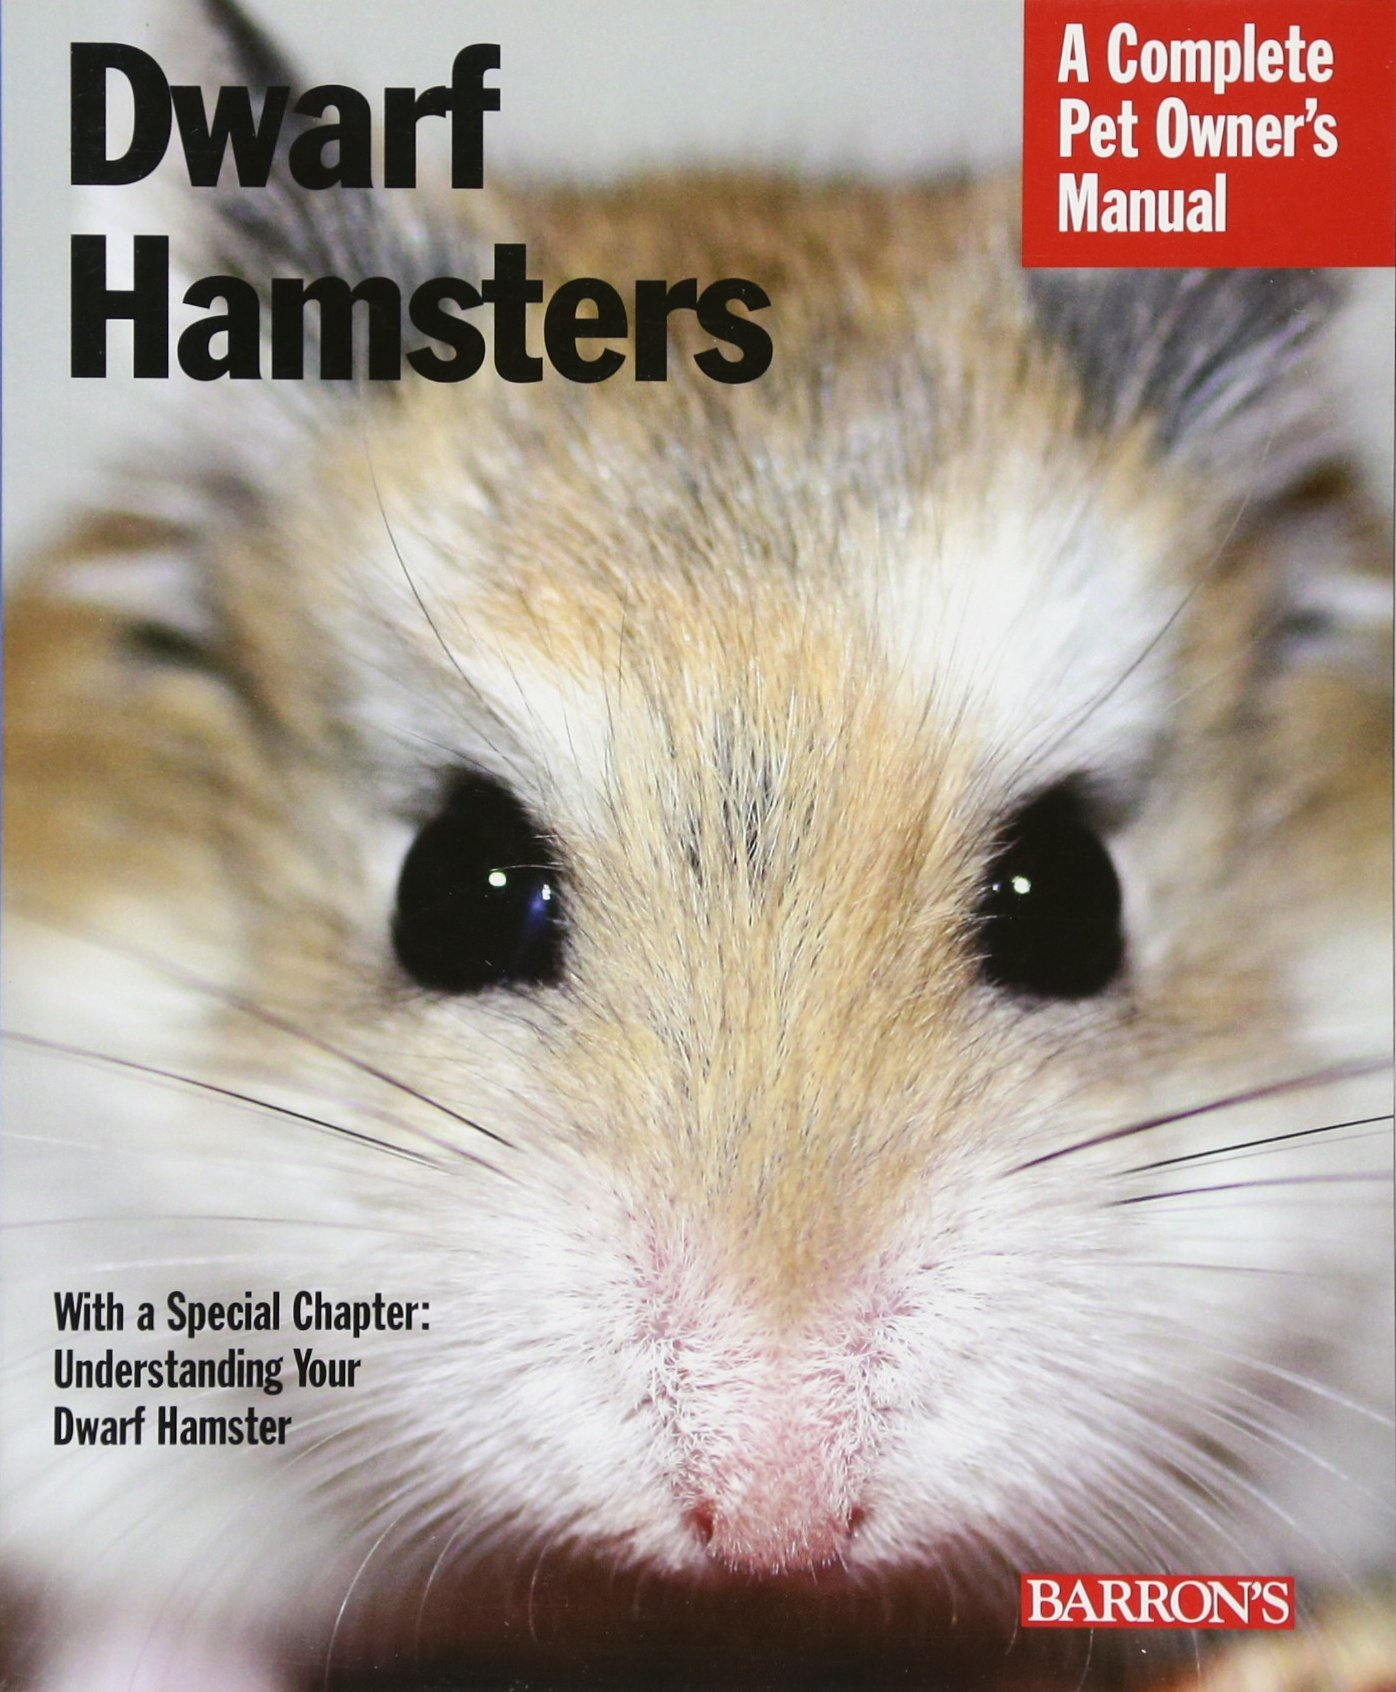 Dwarf Hamsters (Complete Pet Owner's Manual): Sharon Vanderlip:  0027011040962: Amazon.com: Books